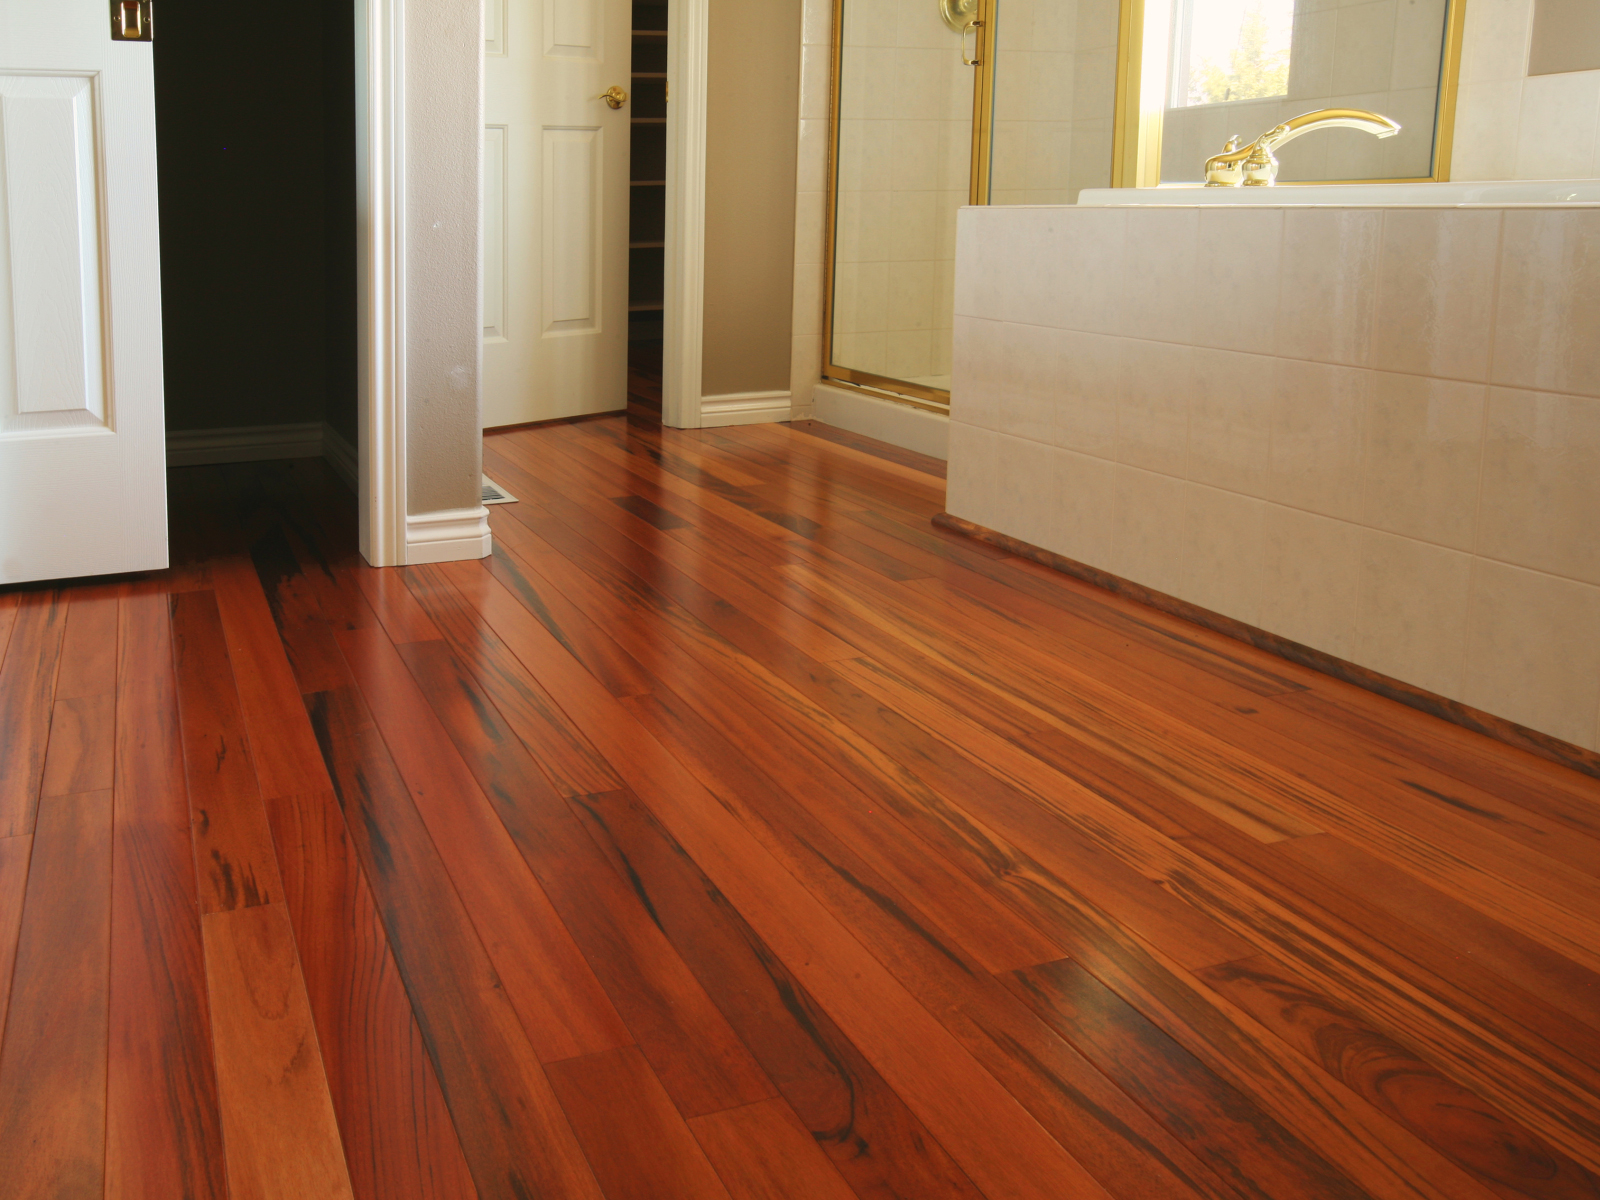 New Laminate Wood Flooring Vs Hardwood